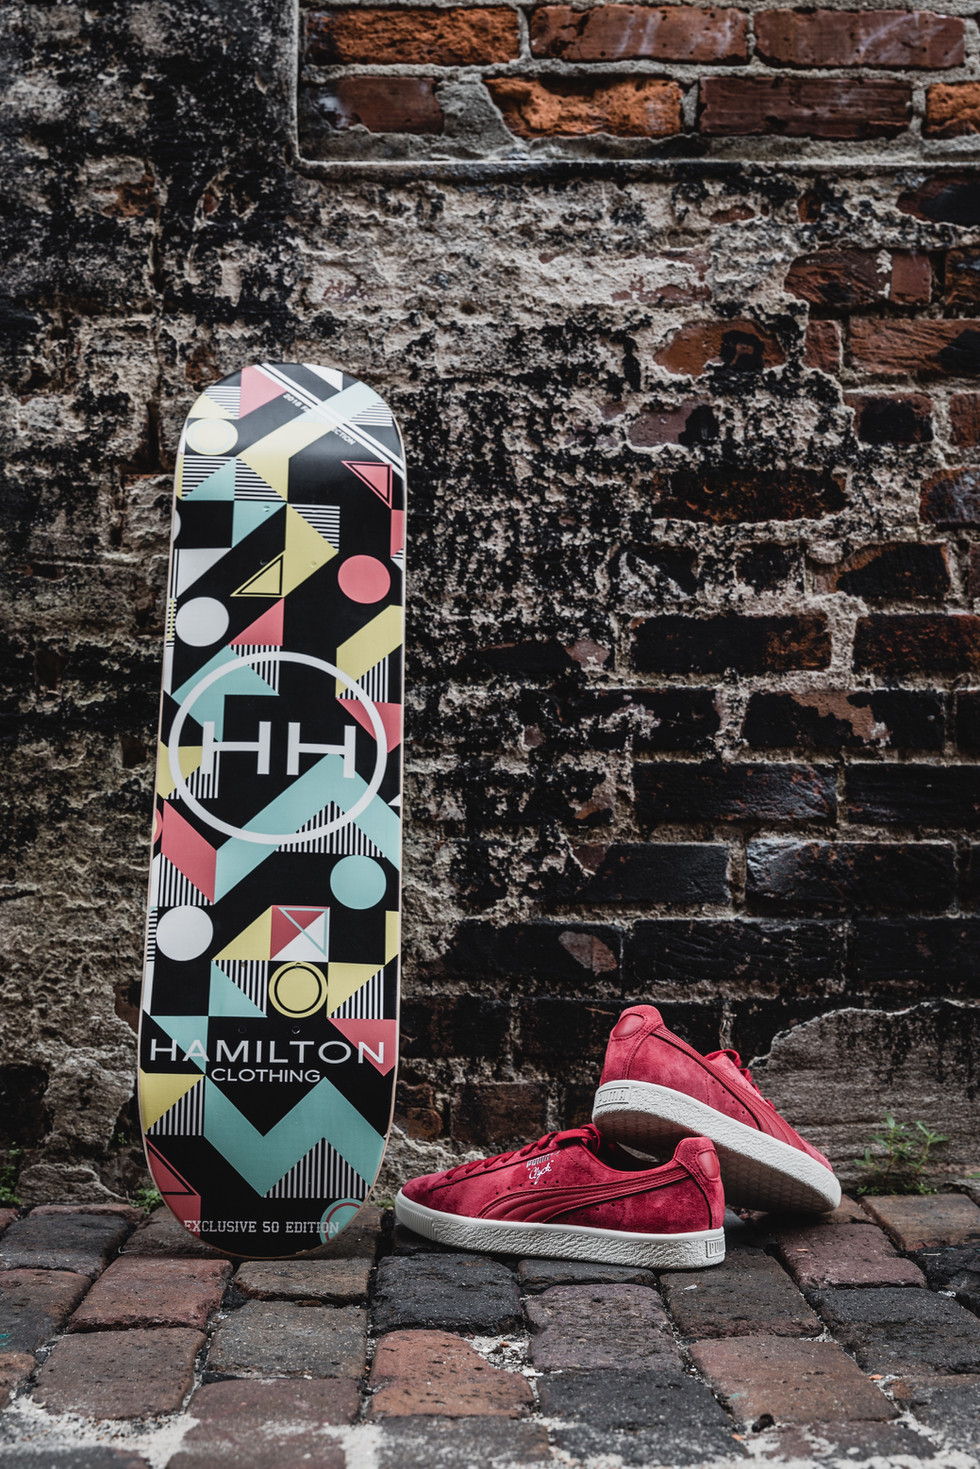 Geometric skateboard deck paired with red puma suede sneakers